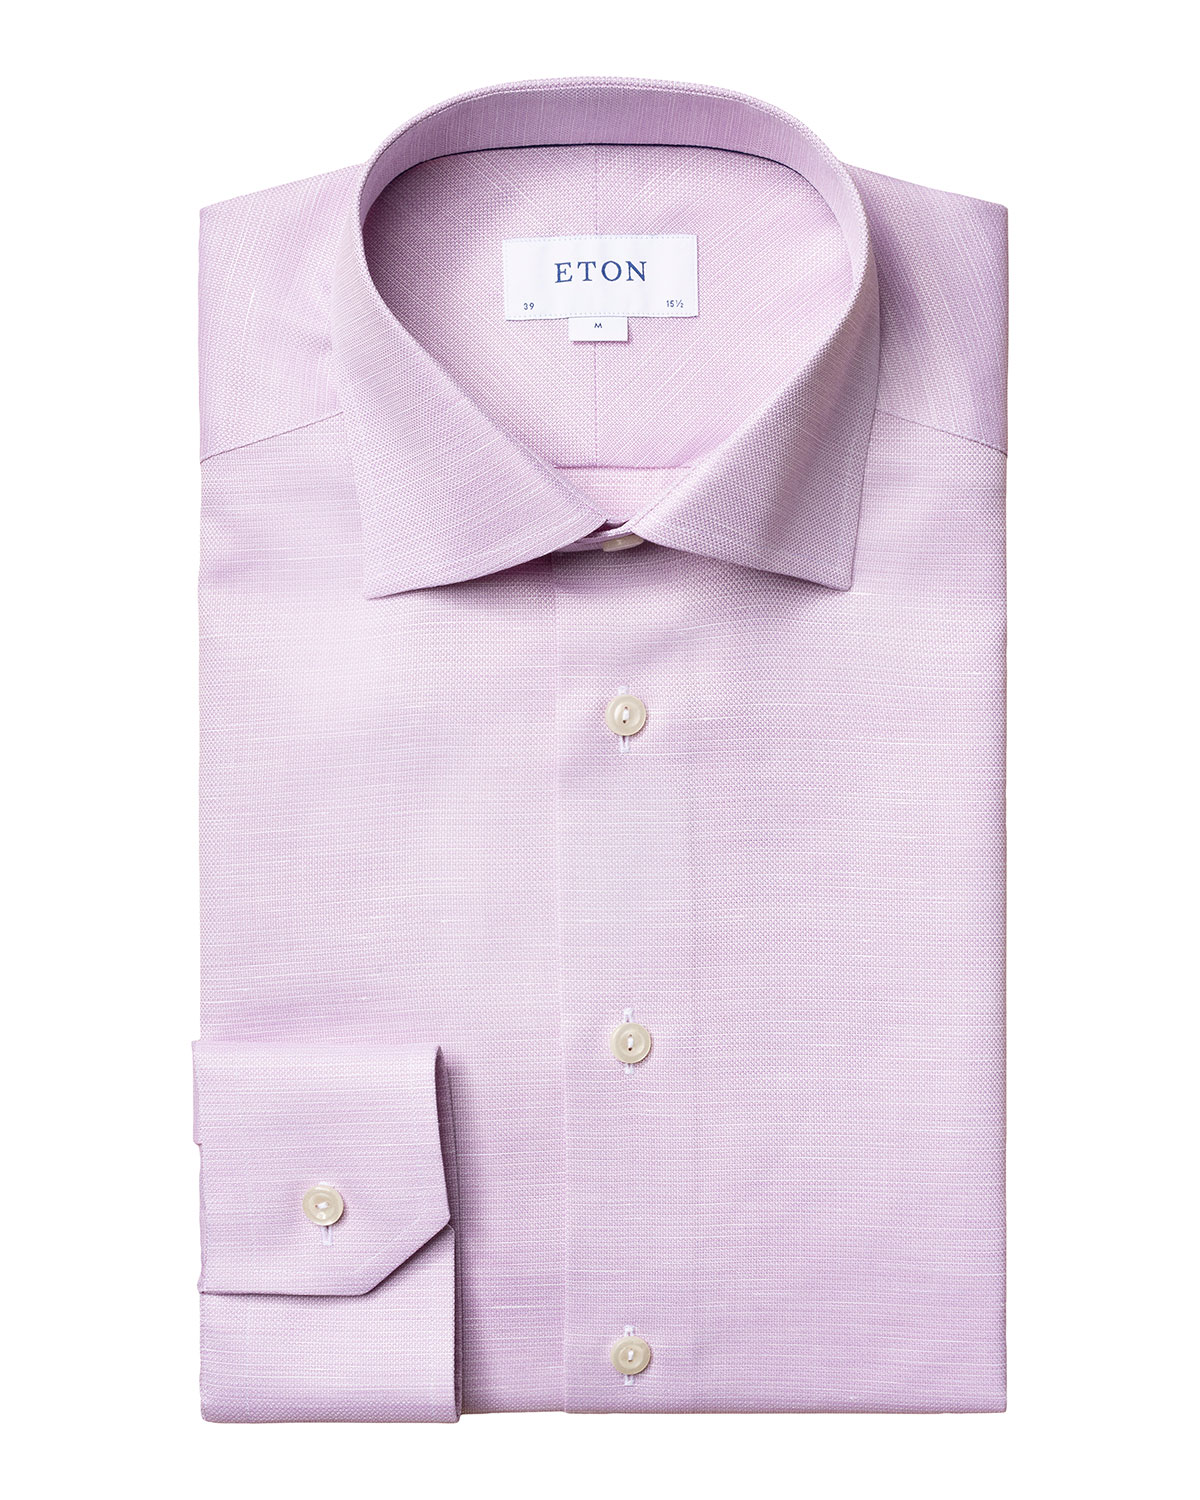 Eton Men's Slim-Fit Textured Cotton-Linen Dress Shirt